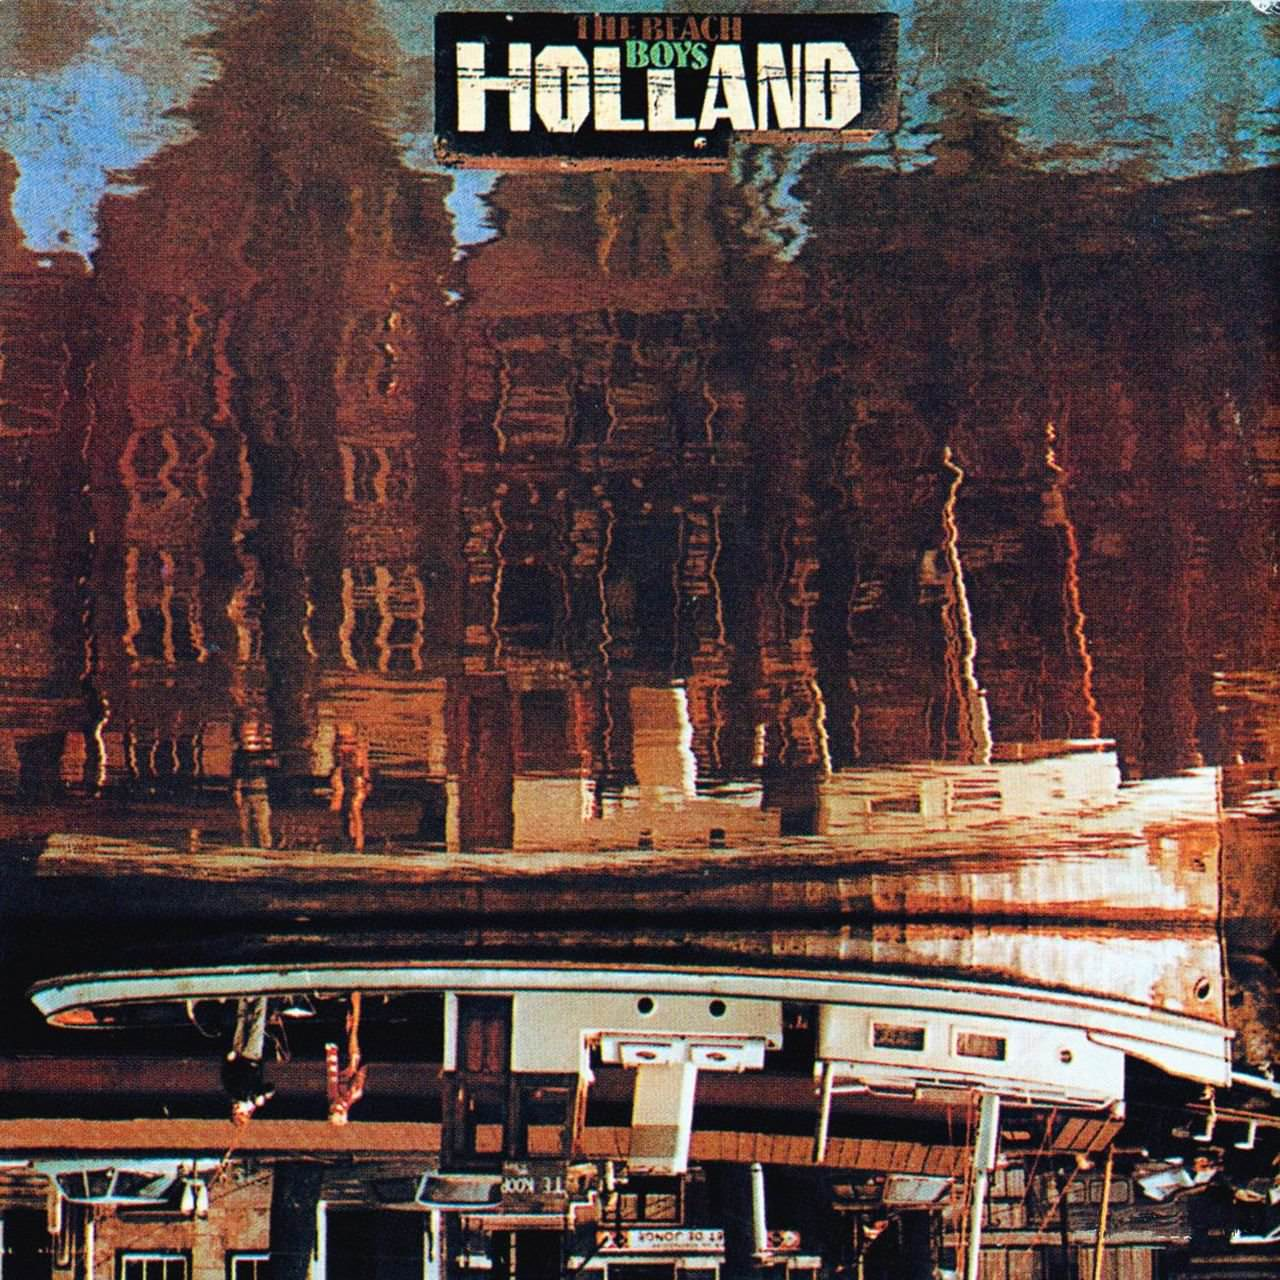 Holland cover